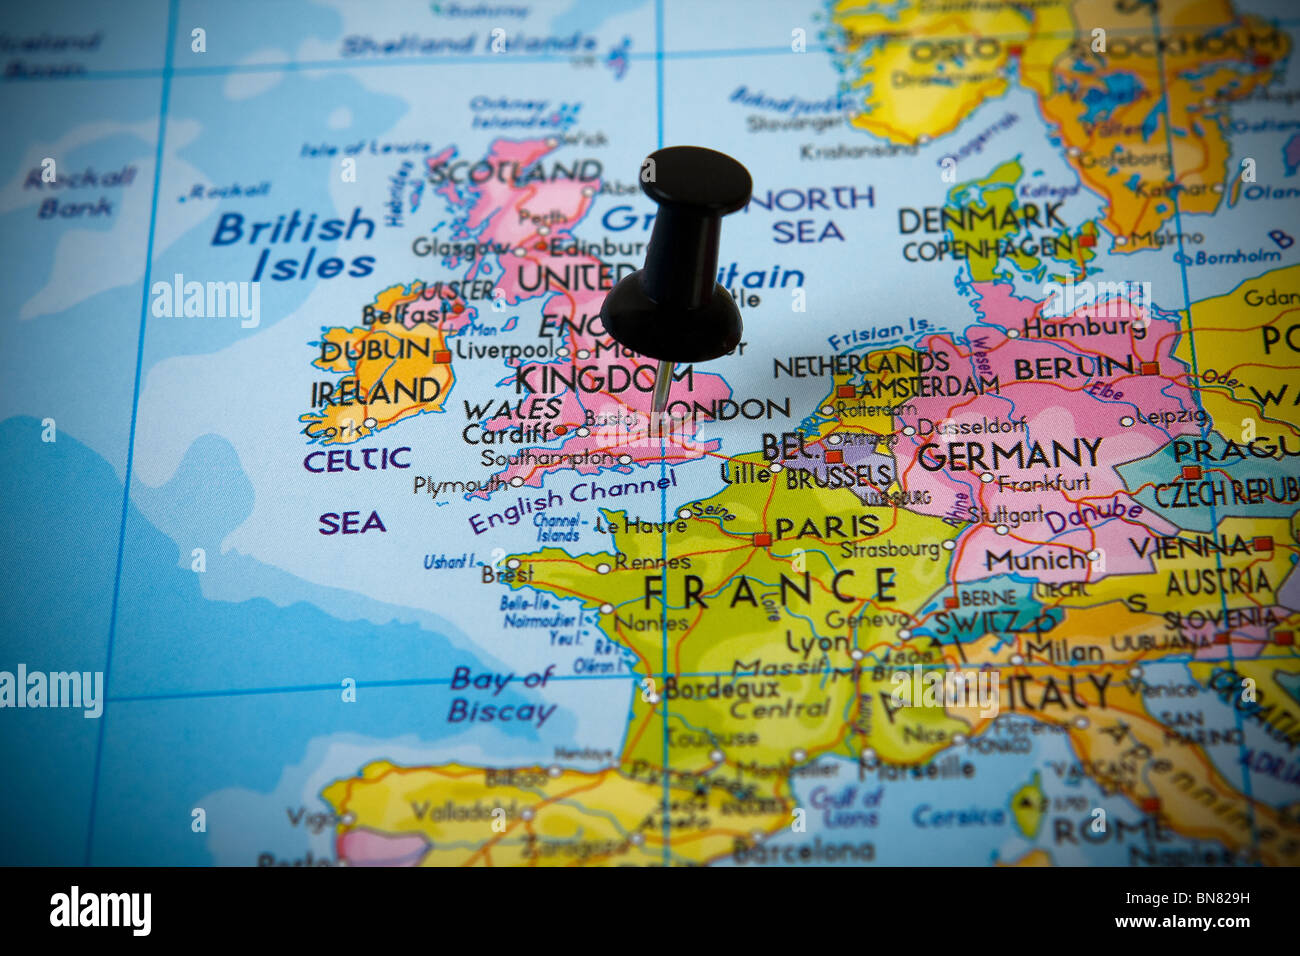 Small Pin Pointing On London UK In A Map Of Europe Stock Photo - London map in europe